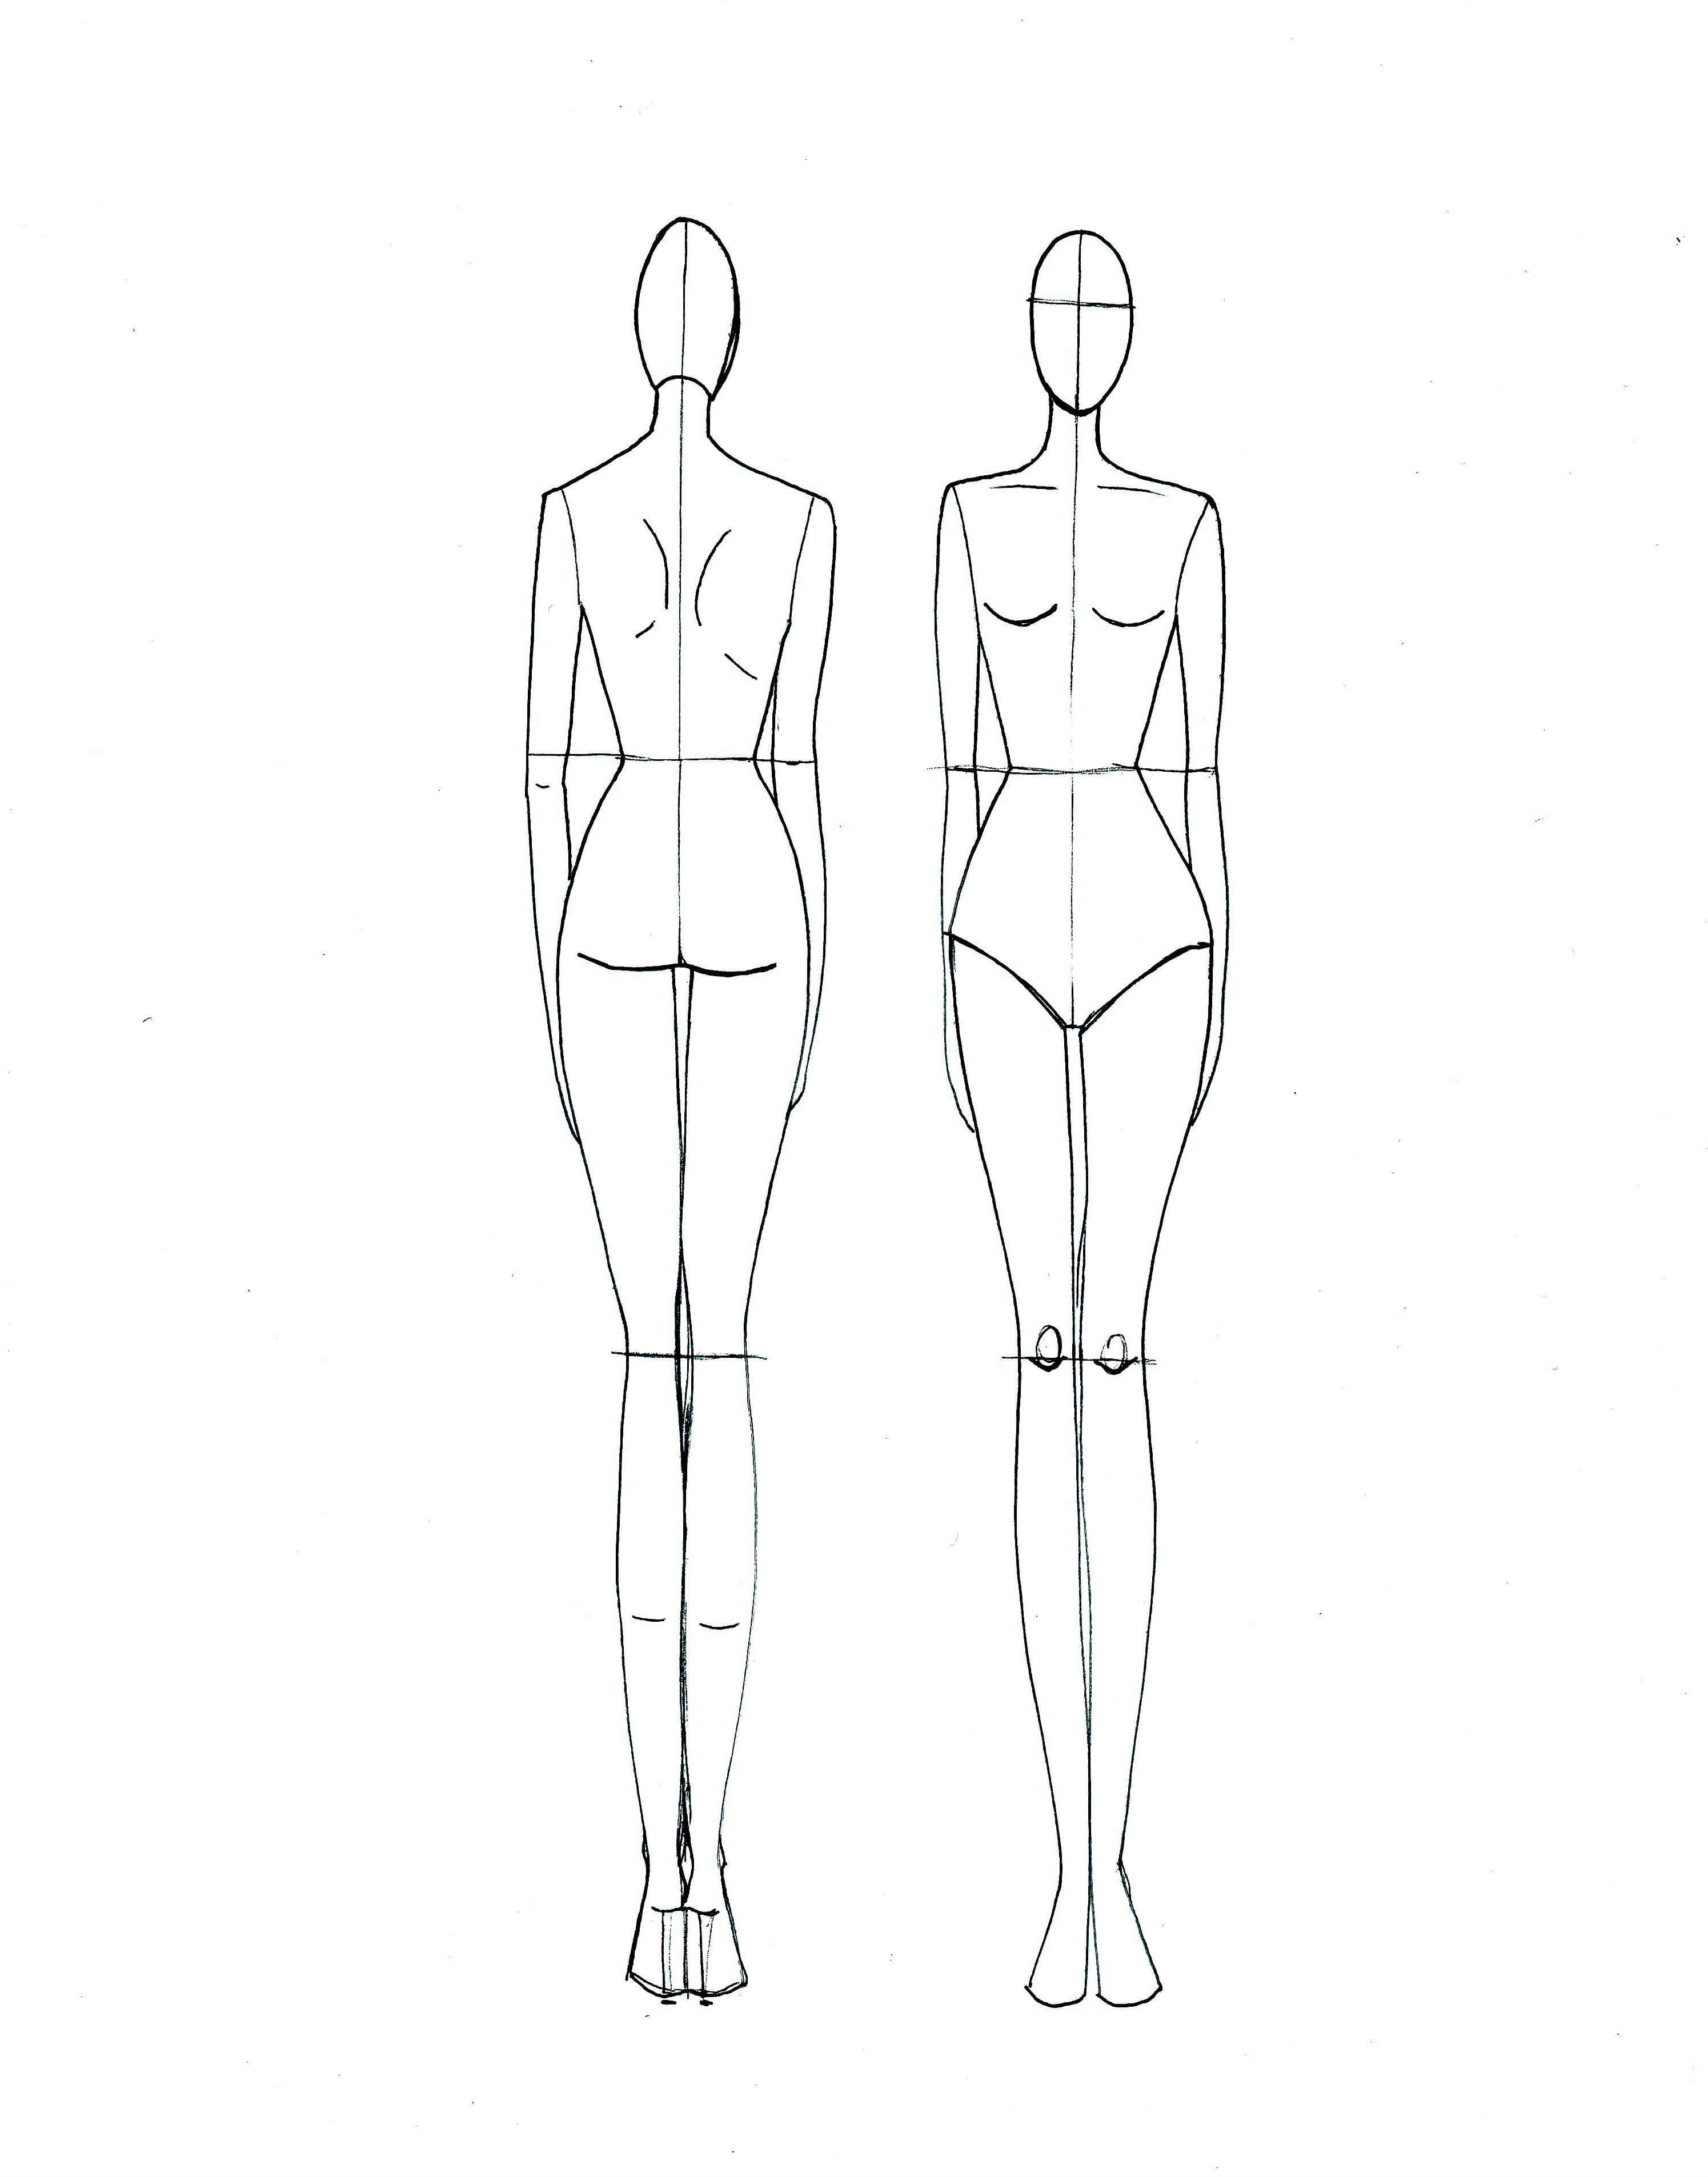 Blank Body Sketch At Paintingvalley | Explore Collection Throughout Blank Model Sketch Template